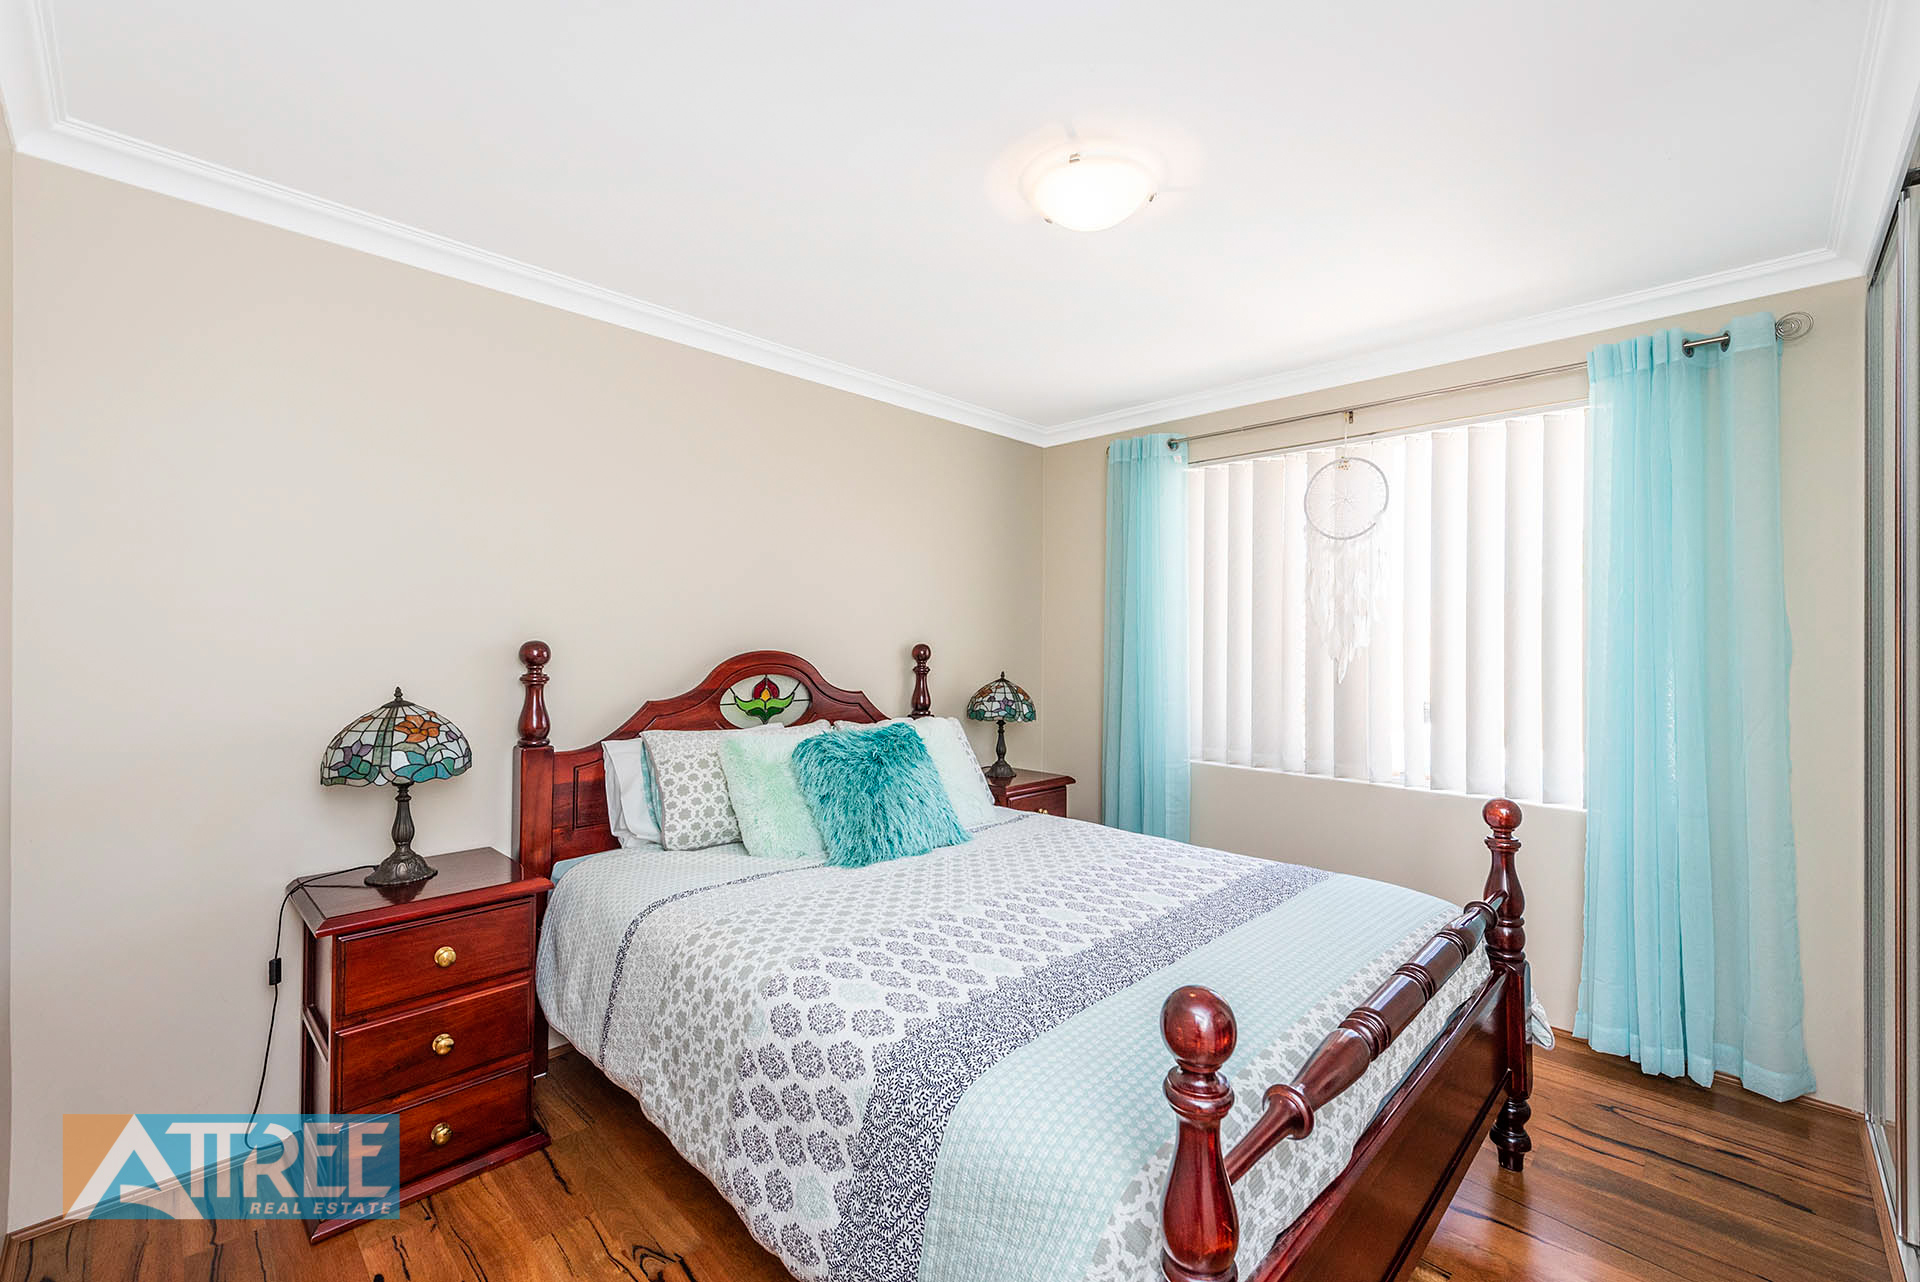 Property for sale in SOUTHERN RIVER, 37 Bletchley Parkway : Attree Real Estate